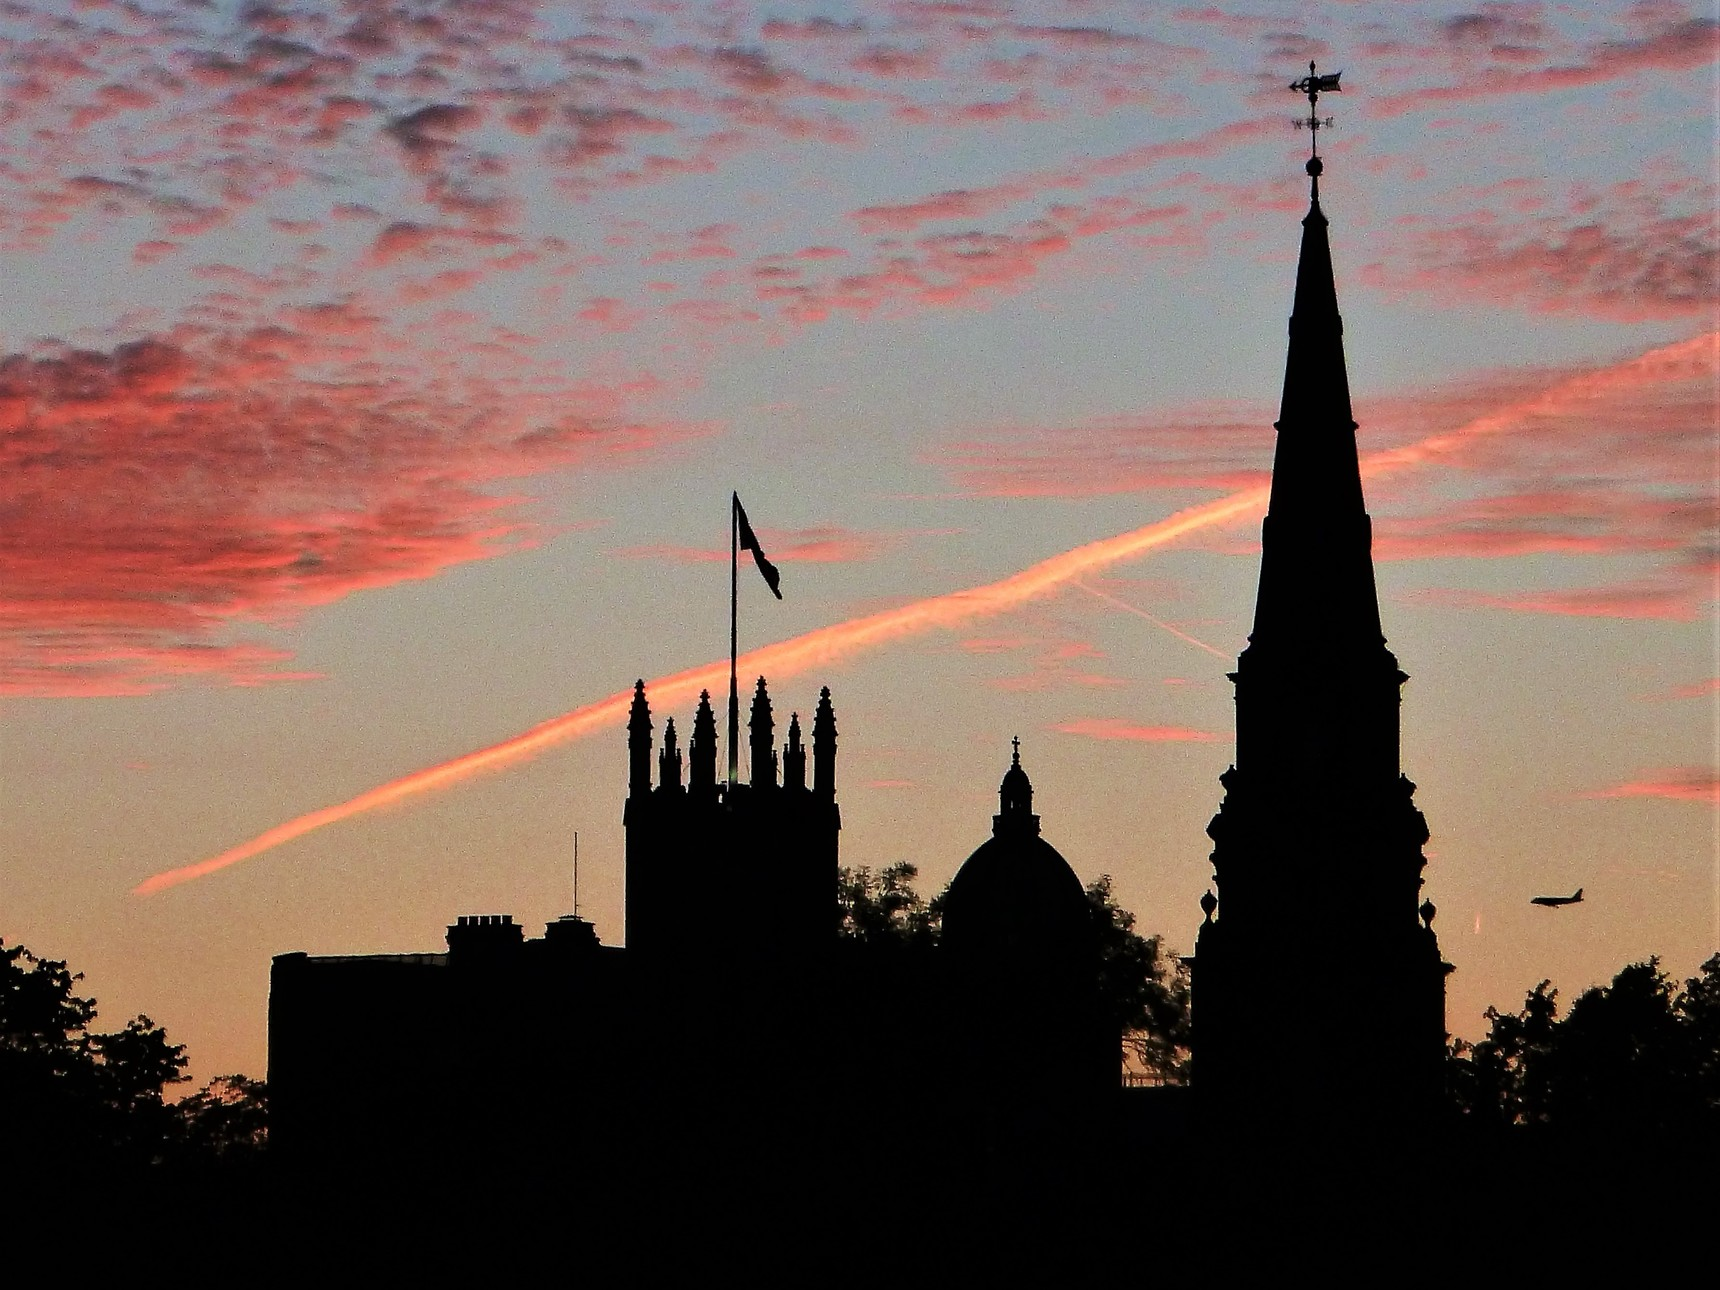 West End Silhouettes at Sundown